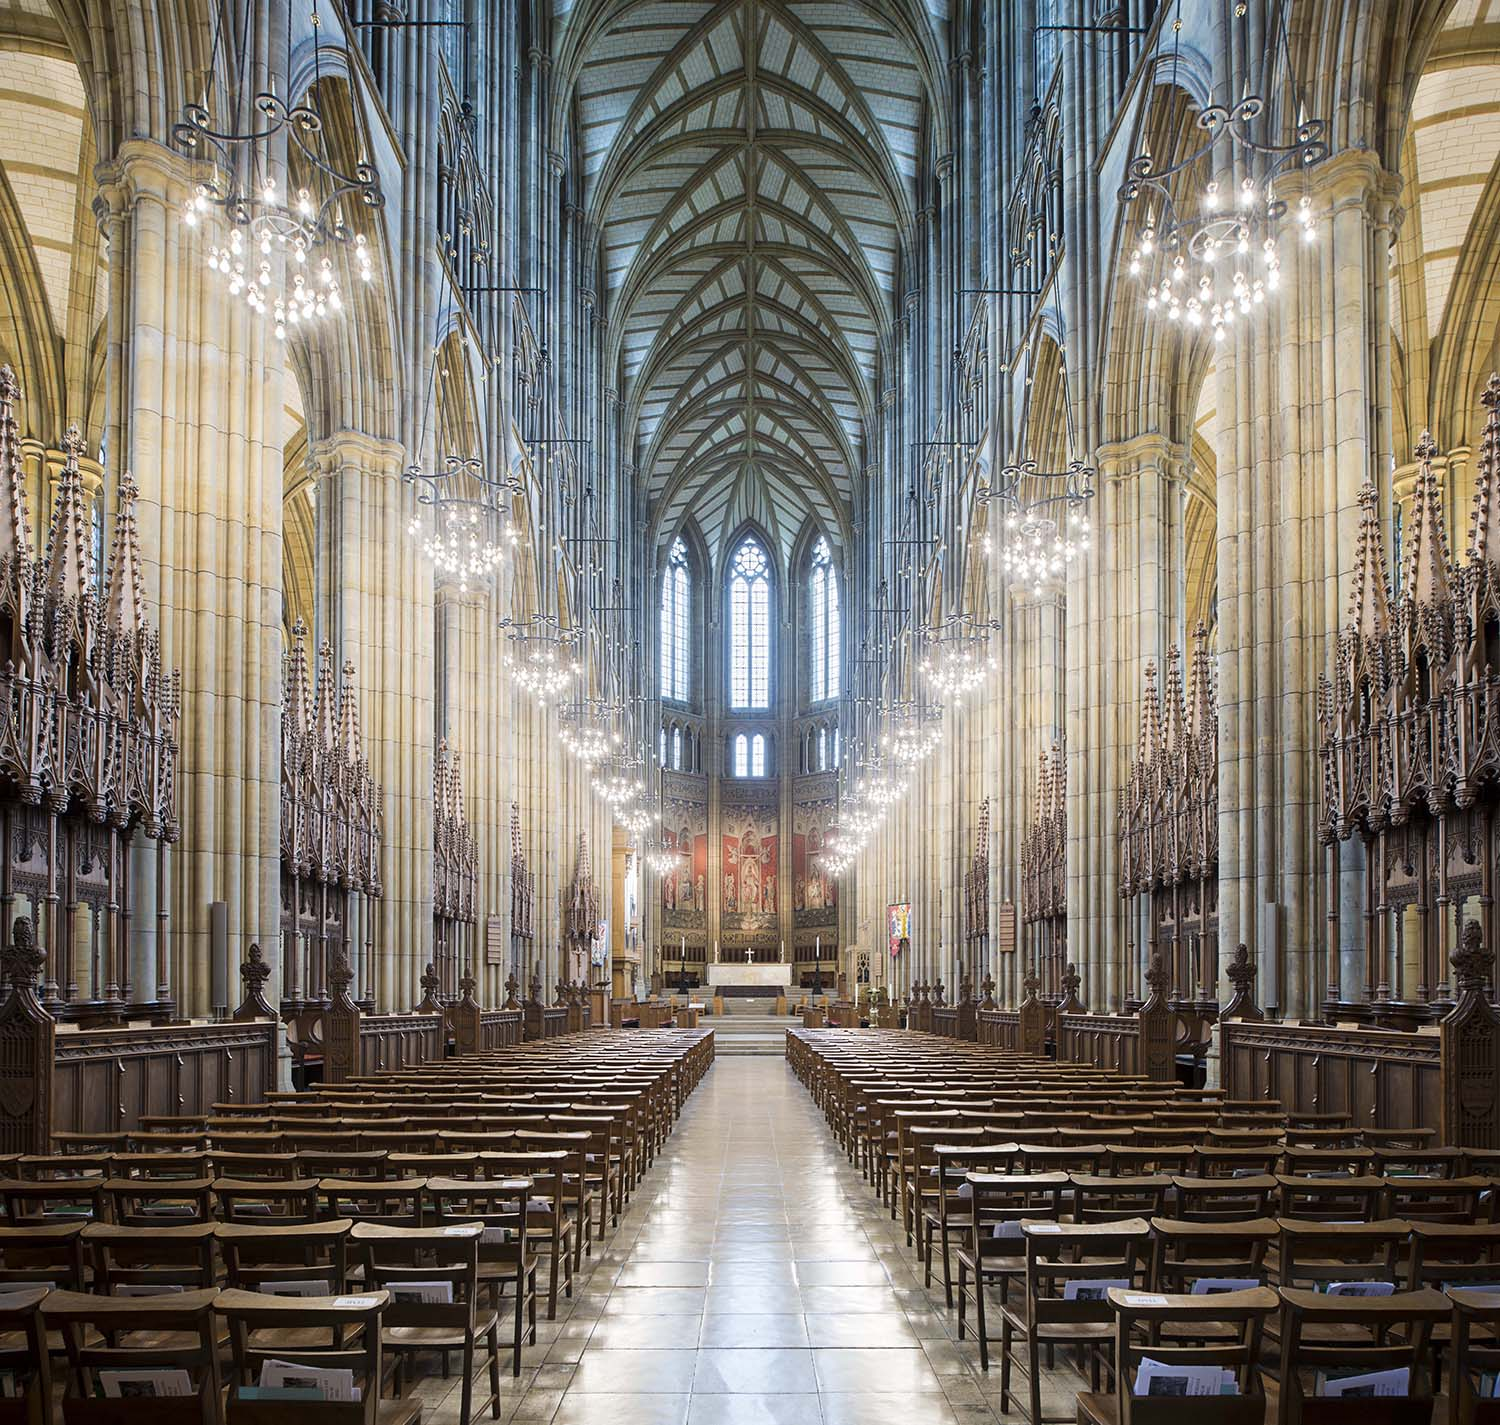 LANCING COLLEGE CHAPEL / SACRED SPACES